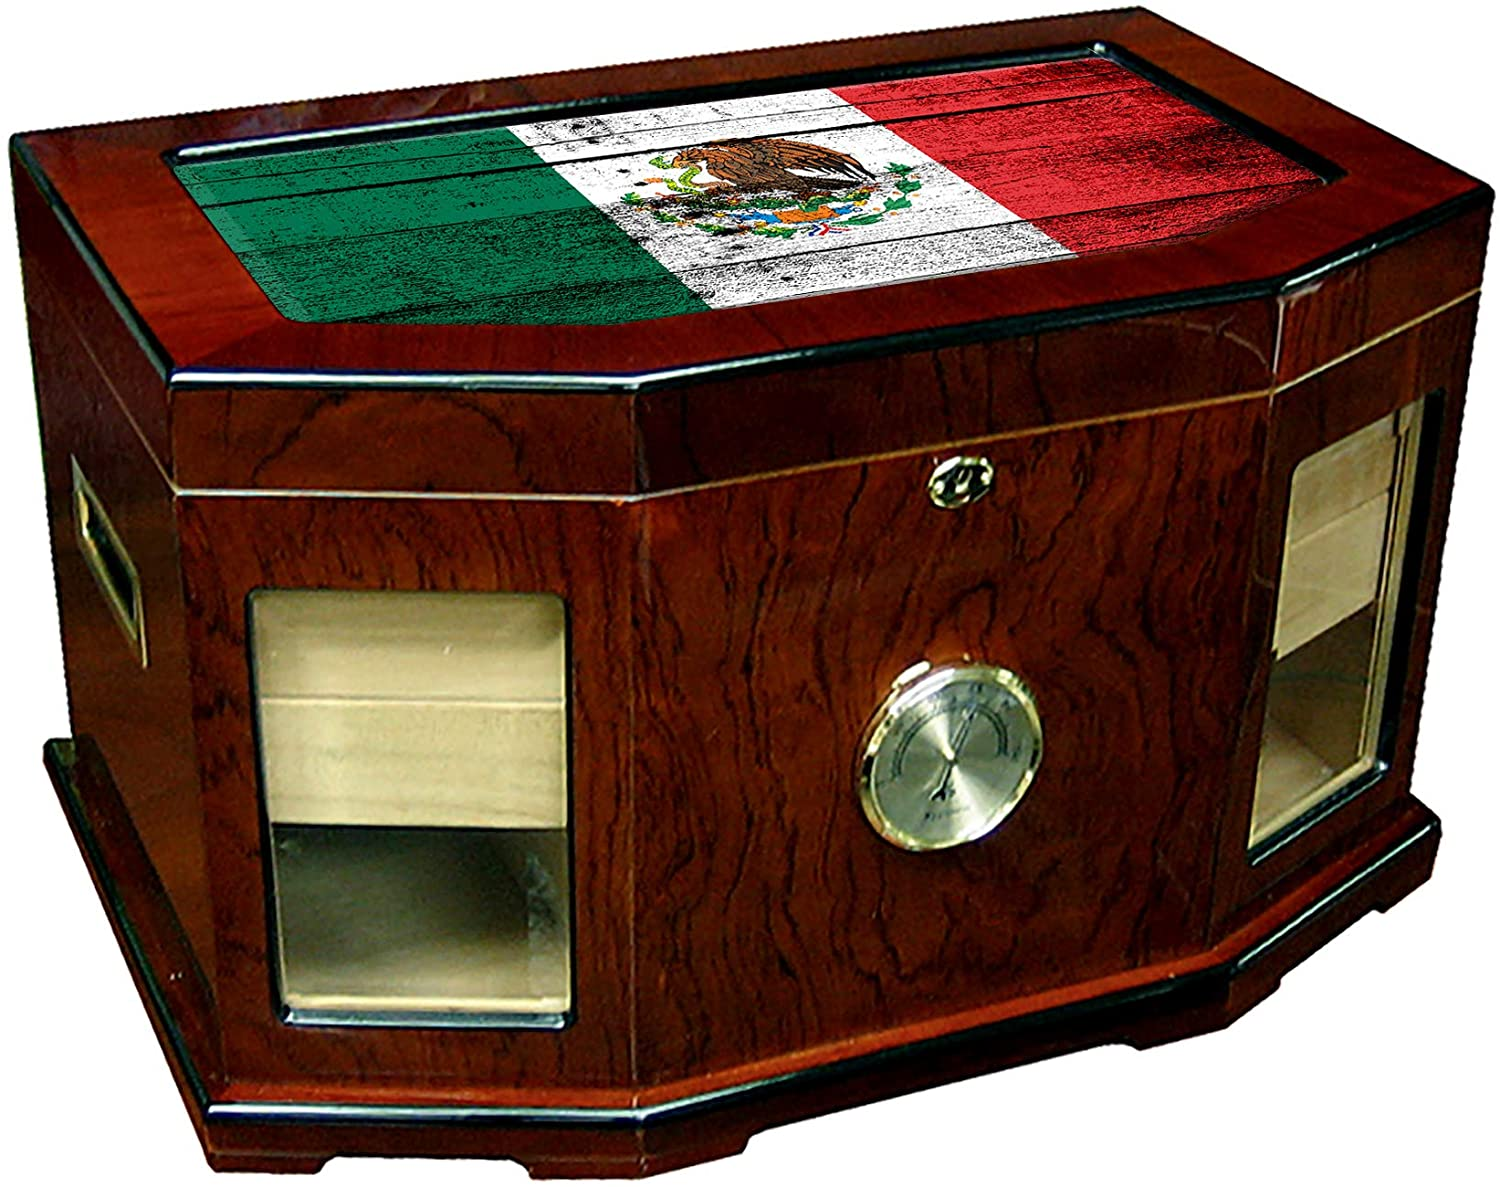 Large Premium Desktop Humidor - Glass Top - Flag of Mexico (Mexican) - Wood Design - 300 Cigar Capacity - Cedar Lined with Two humidifiers & Large Front Mounted Hygrometer.